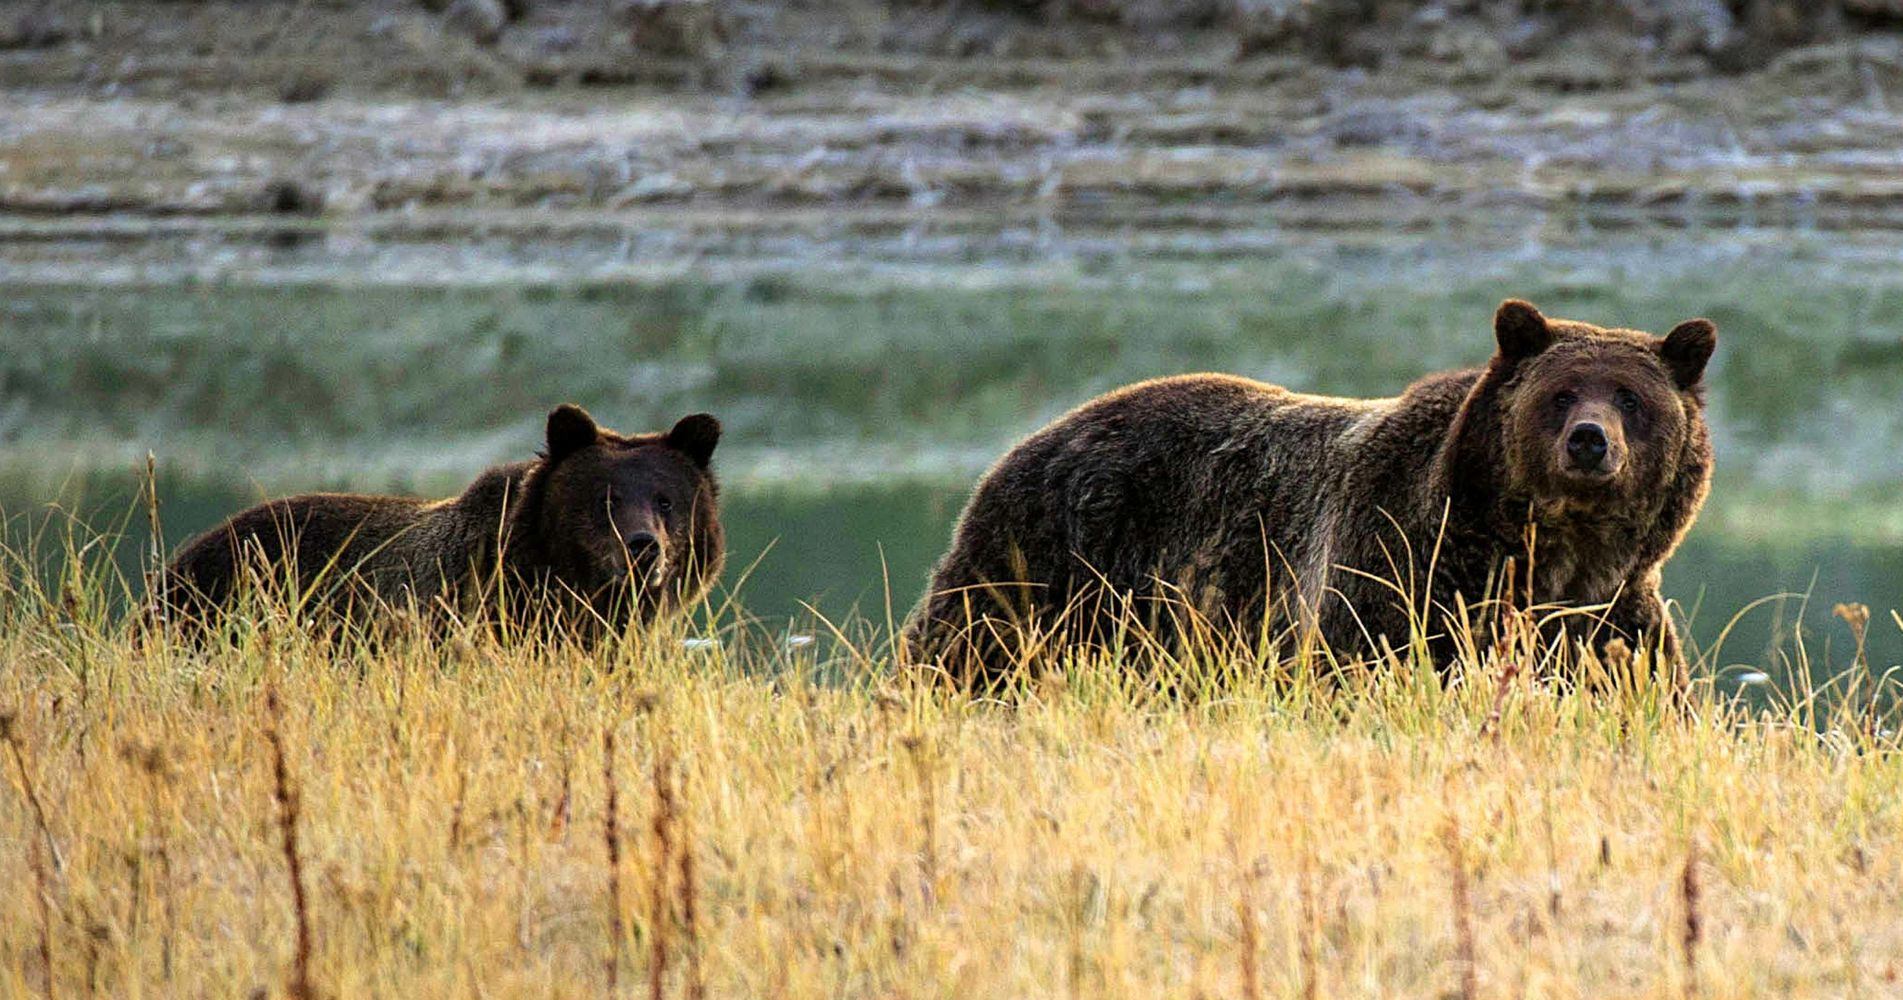 Federal Judge Restores Endangered Species Protection To Yellowstone-Area Grizzlies | HuffPost